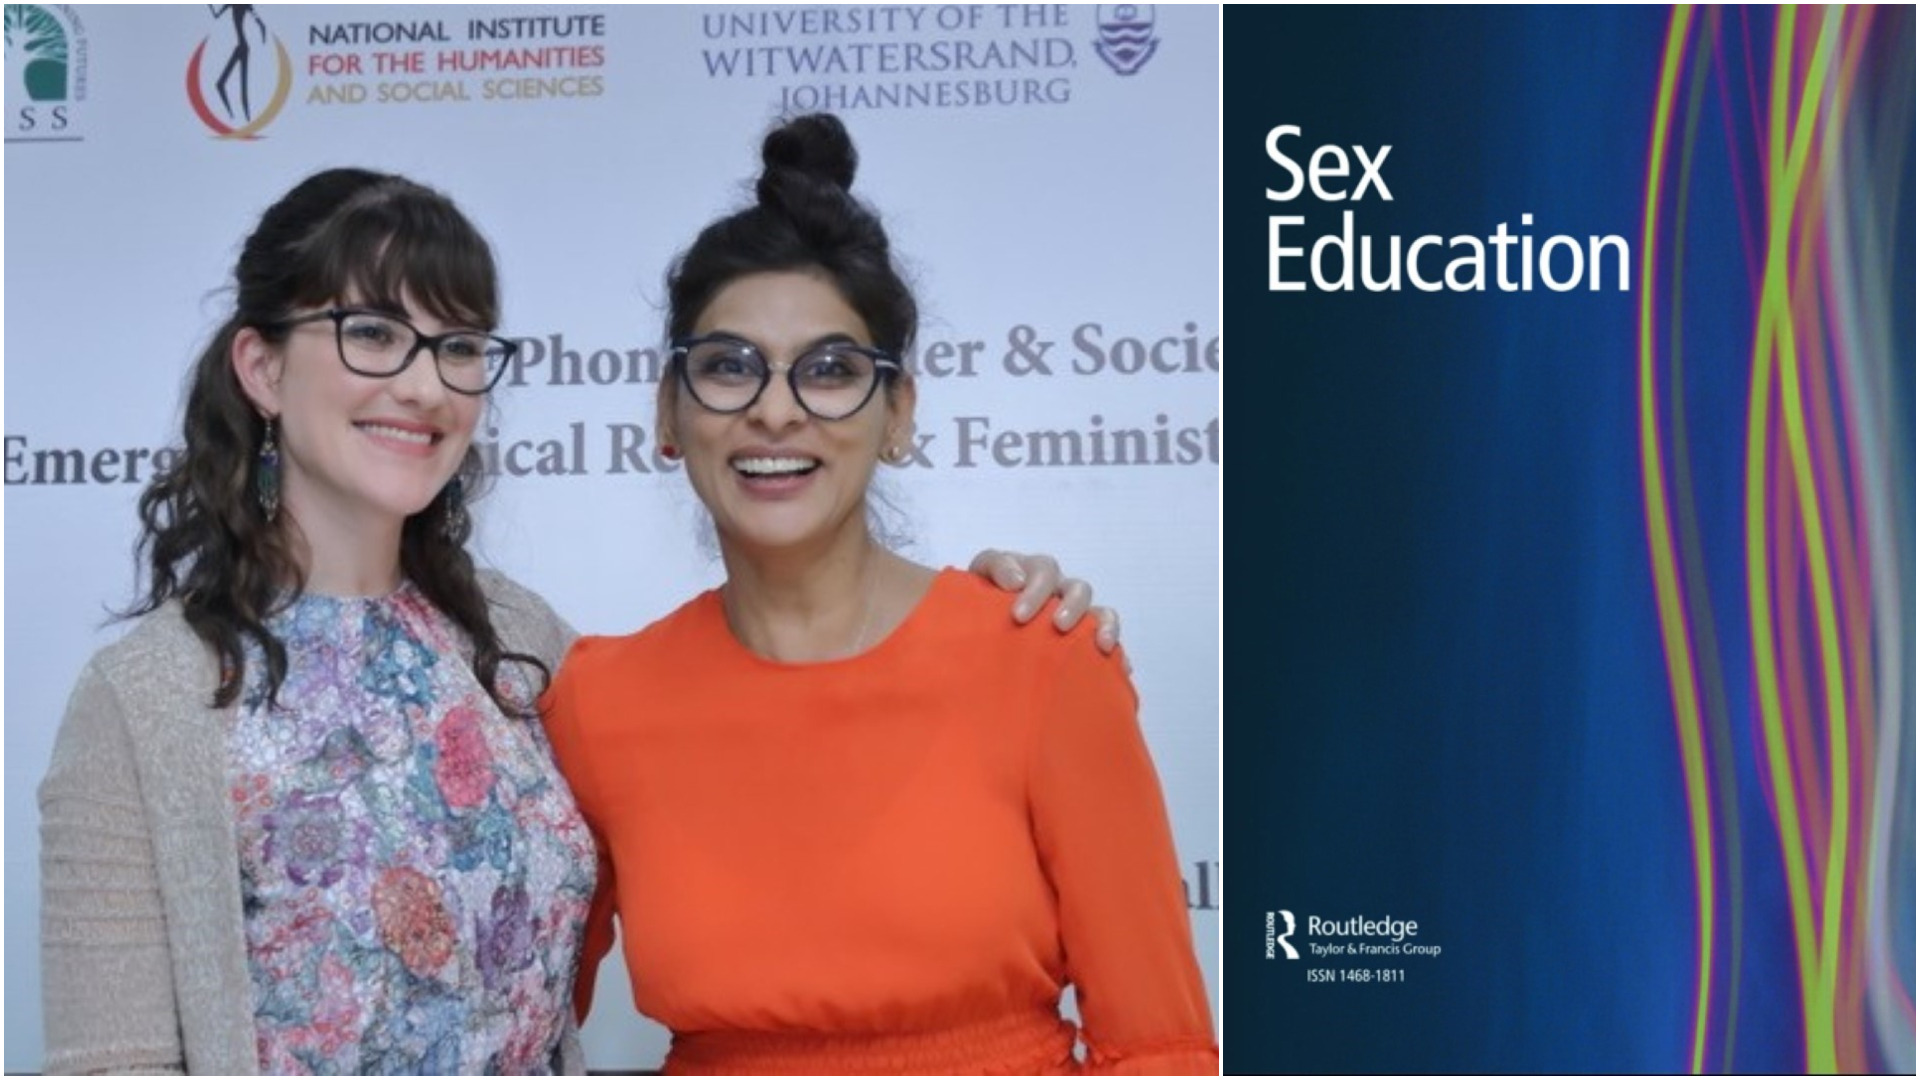 Professor Deevia Bhana (right) with her former student Ms Nicolette Carboni whose work also appears in the Sex Education journal.